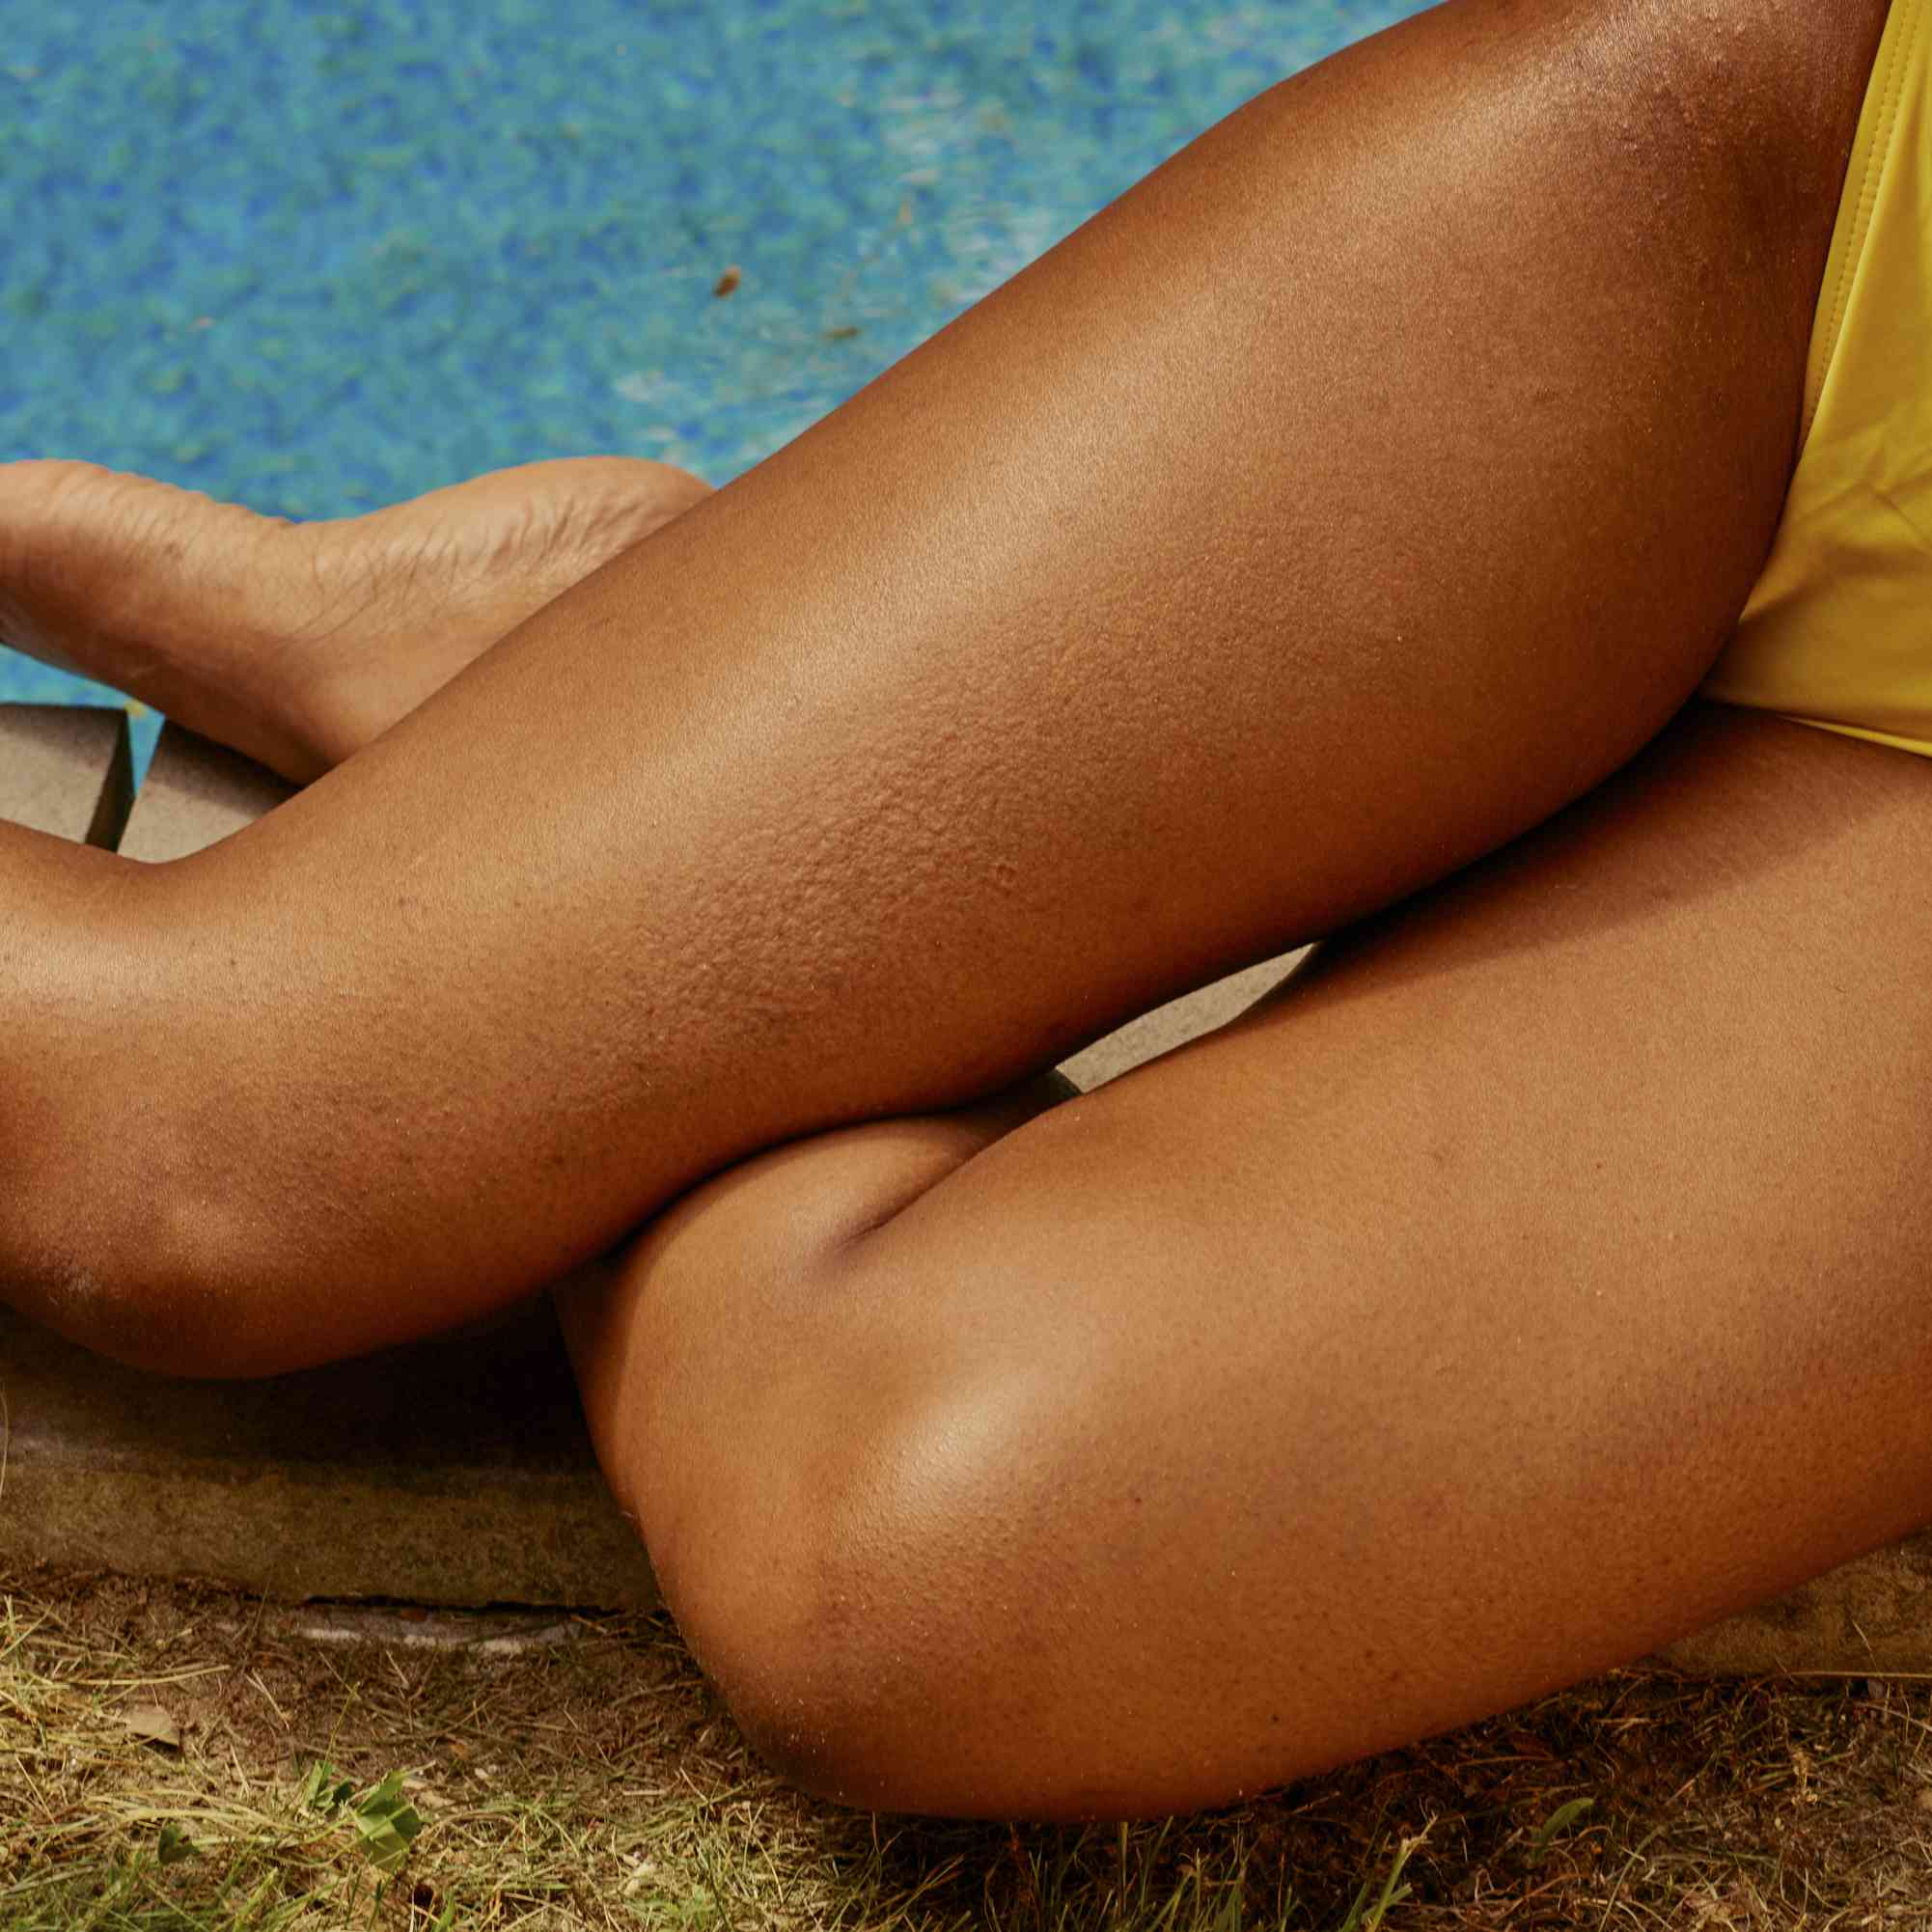 Person with tan, hair-free legs sitting by a pool